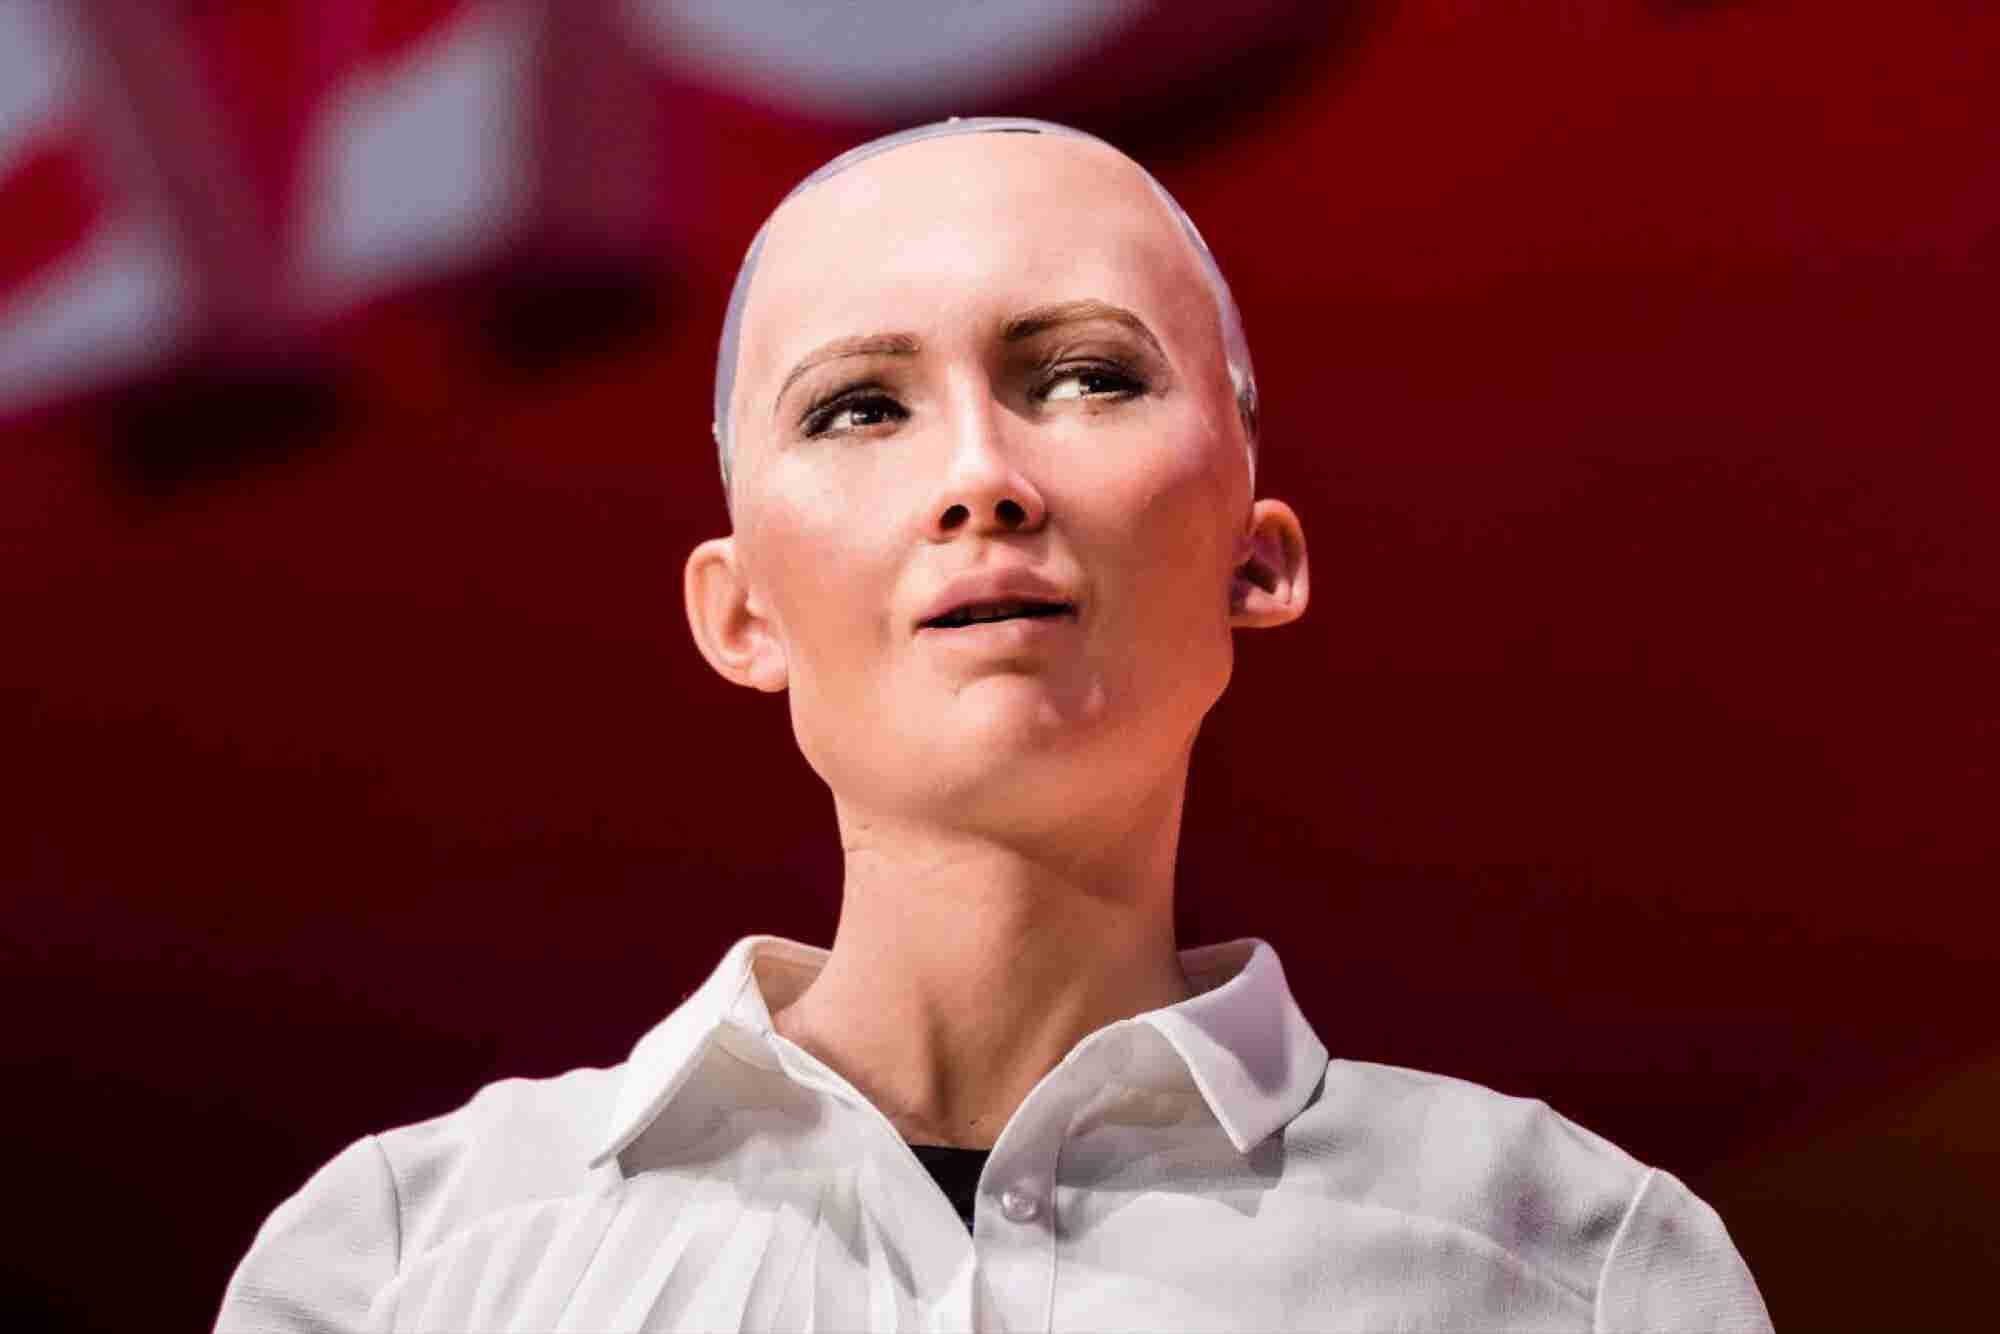 Could AI Developments Get Out of Hand? Have They Already?